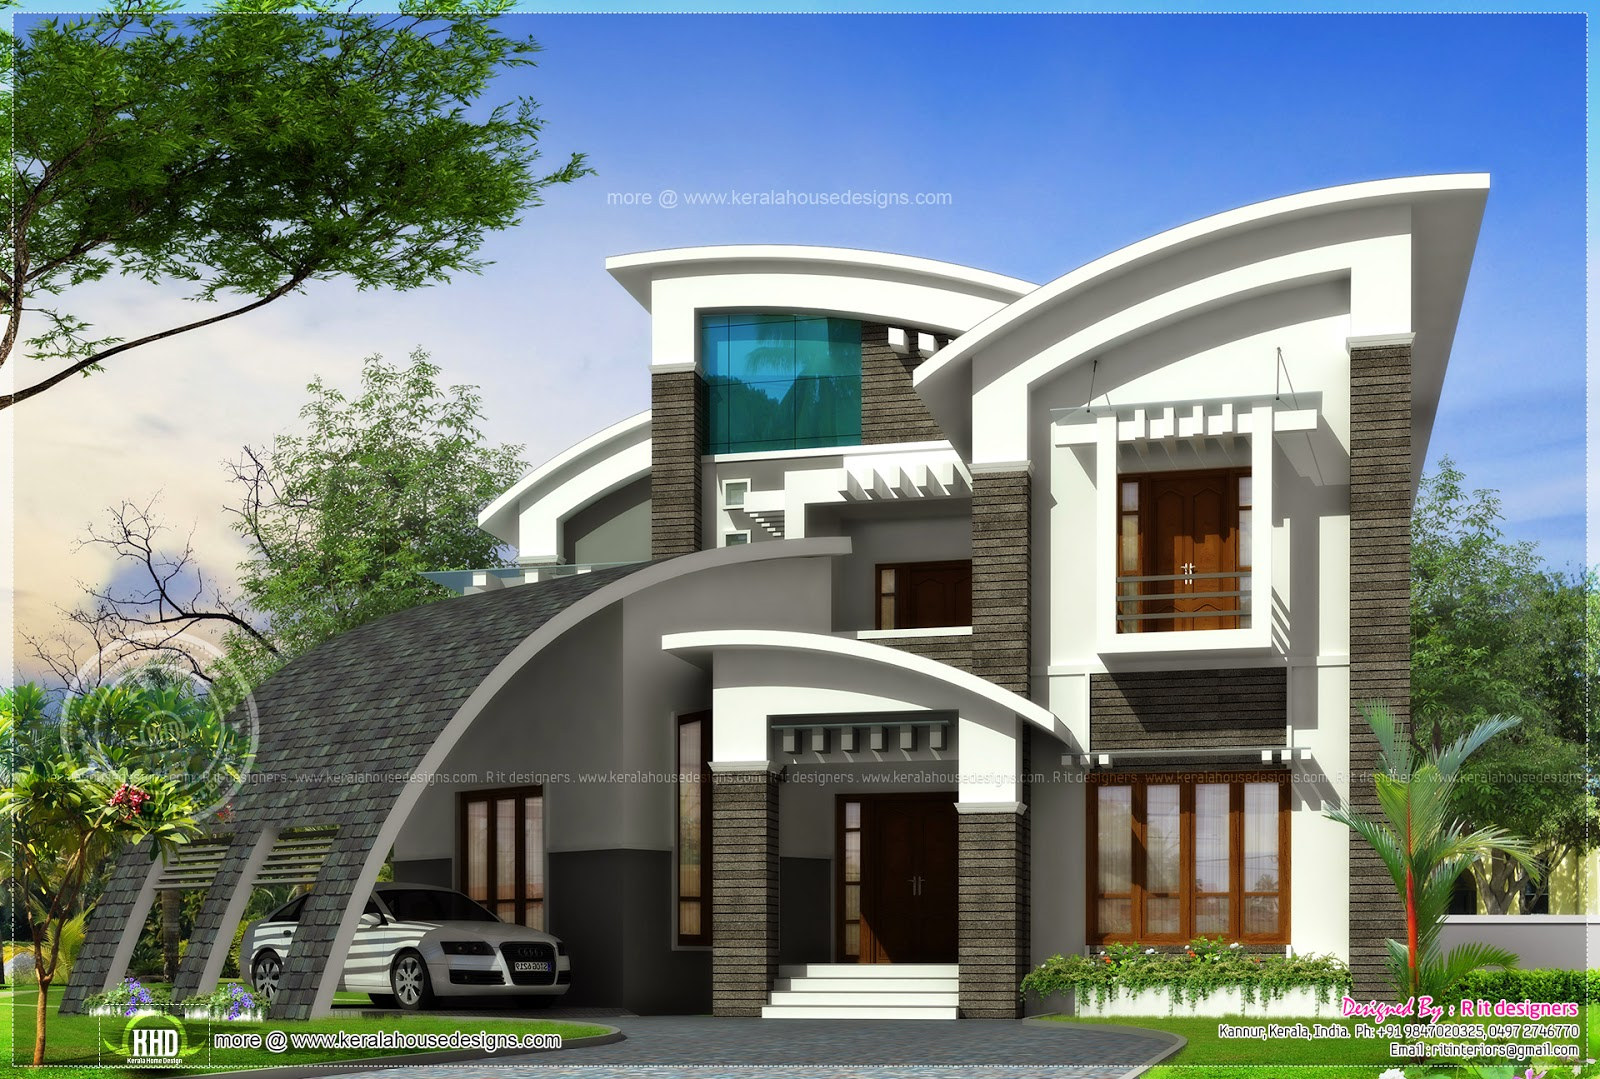 Super luxury ultra modern house design kerala home for Luxury homes plans